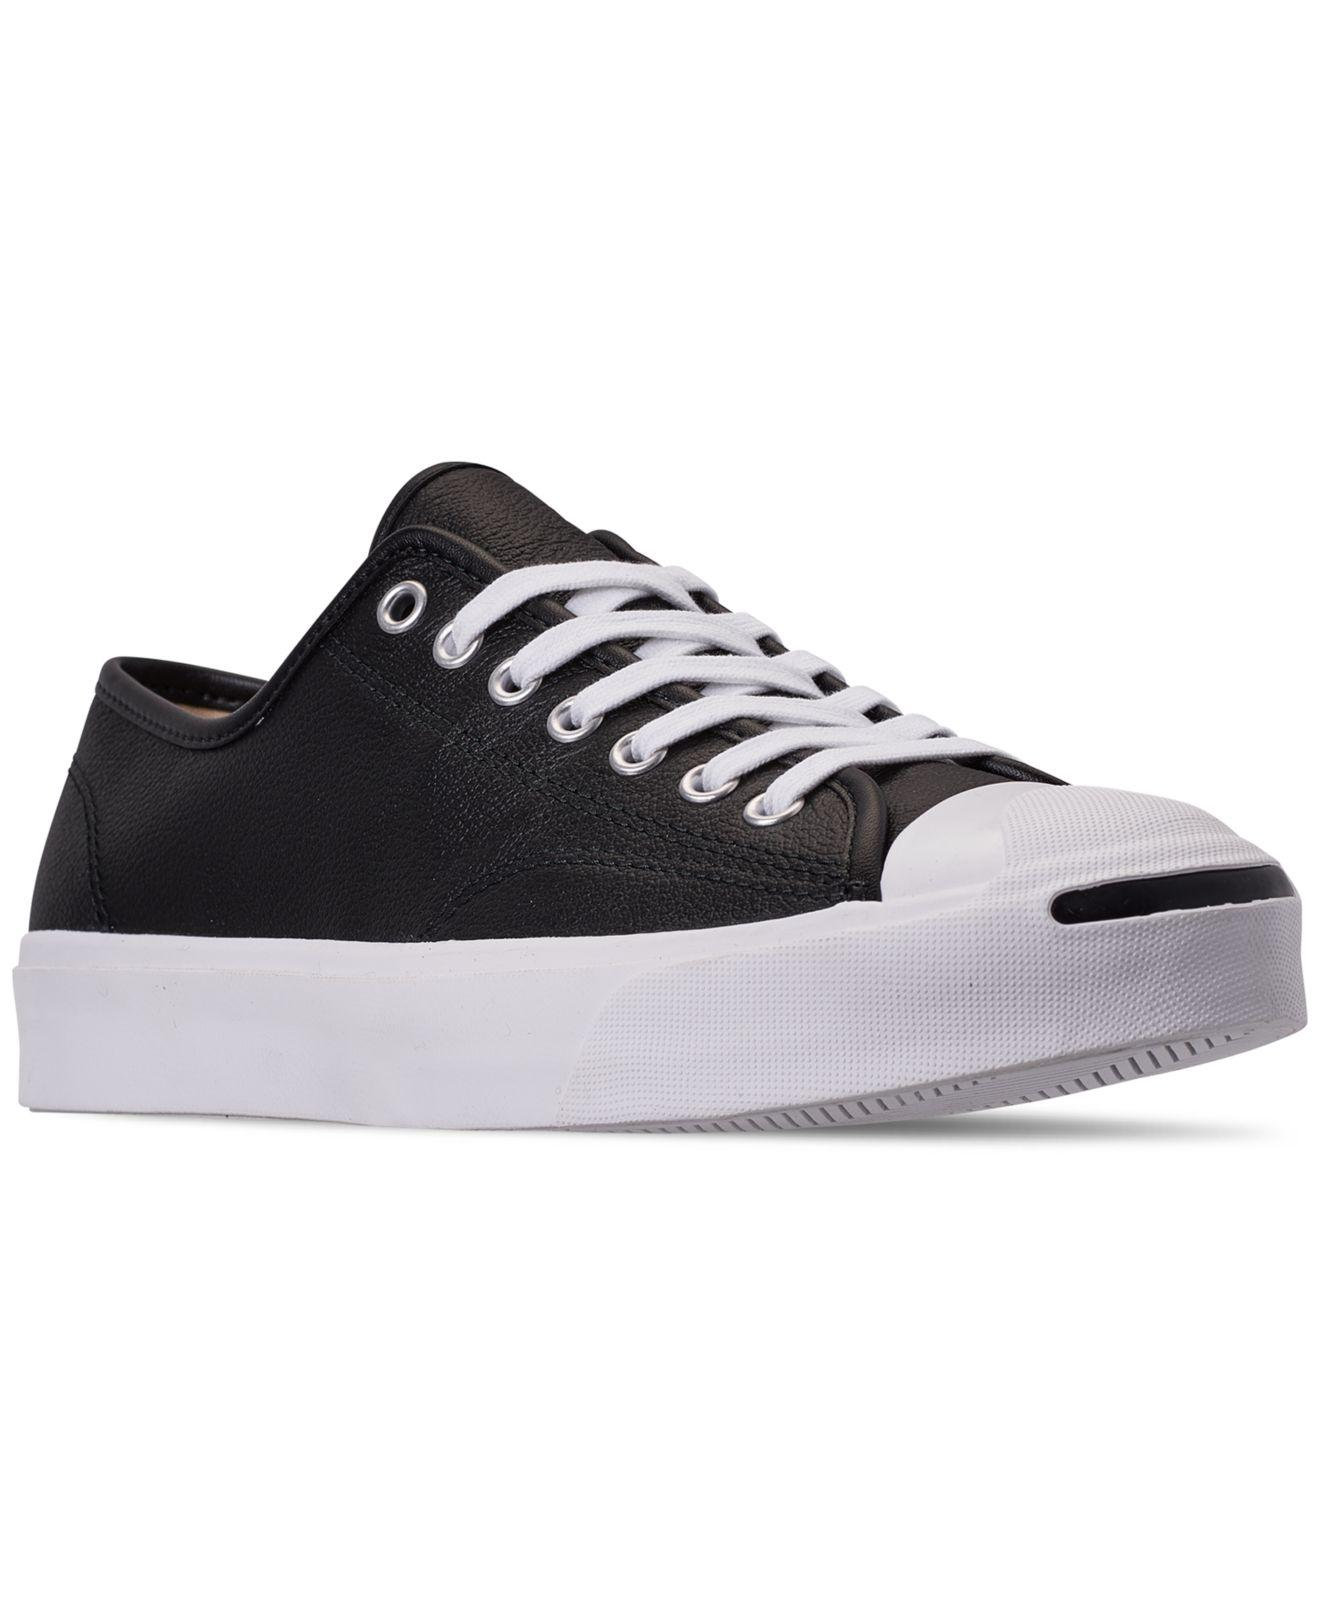 460389fbbe9d Converse. Men s Black Jack Purcell Tumbled Leather Casual Sneakers ...